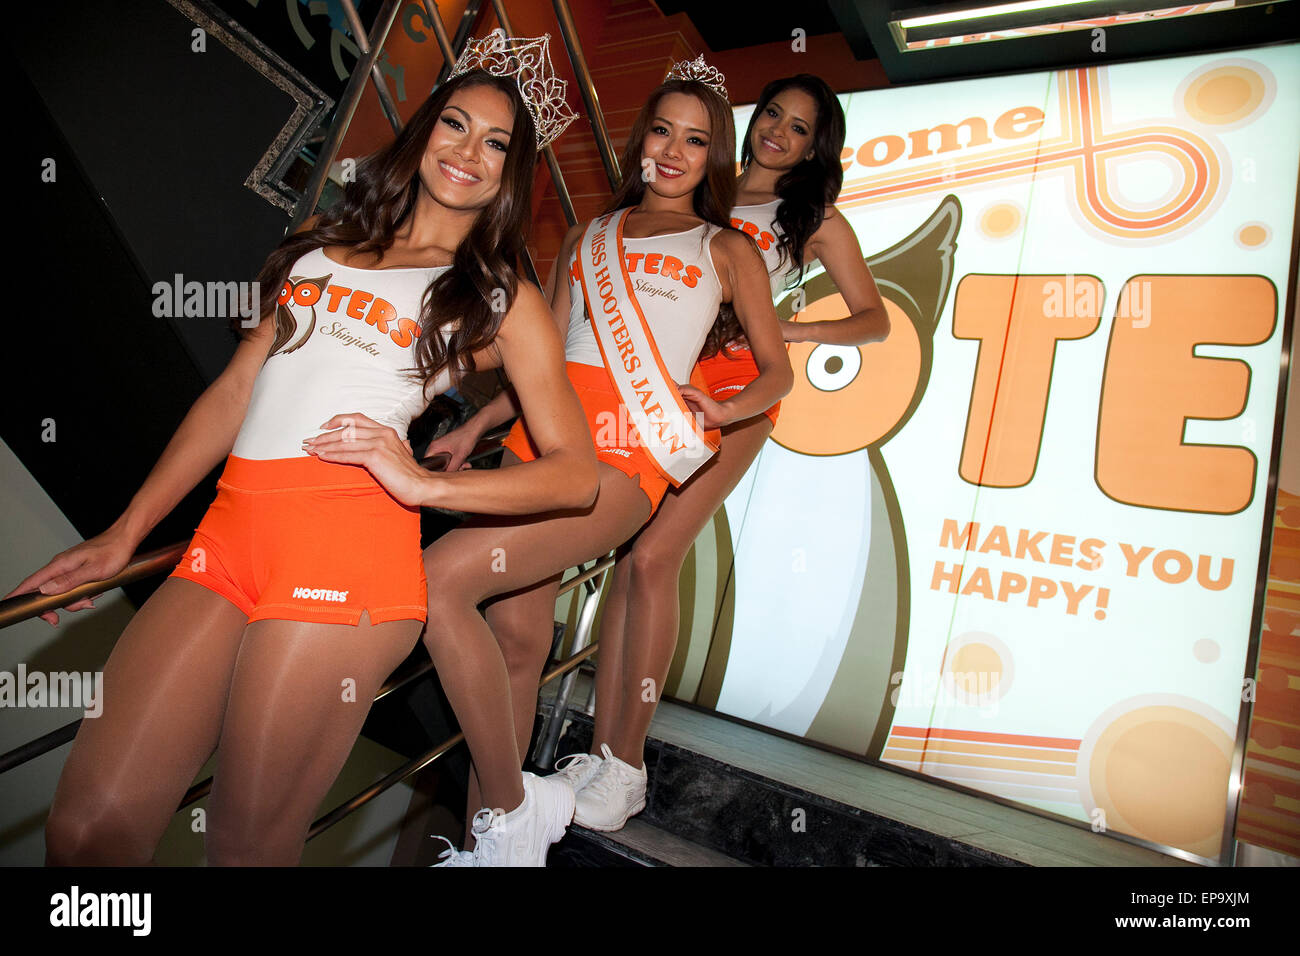 Abby Hooters Calendar May : Janet layug hooters related keywords